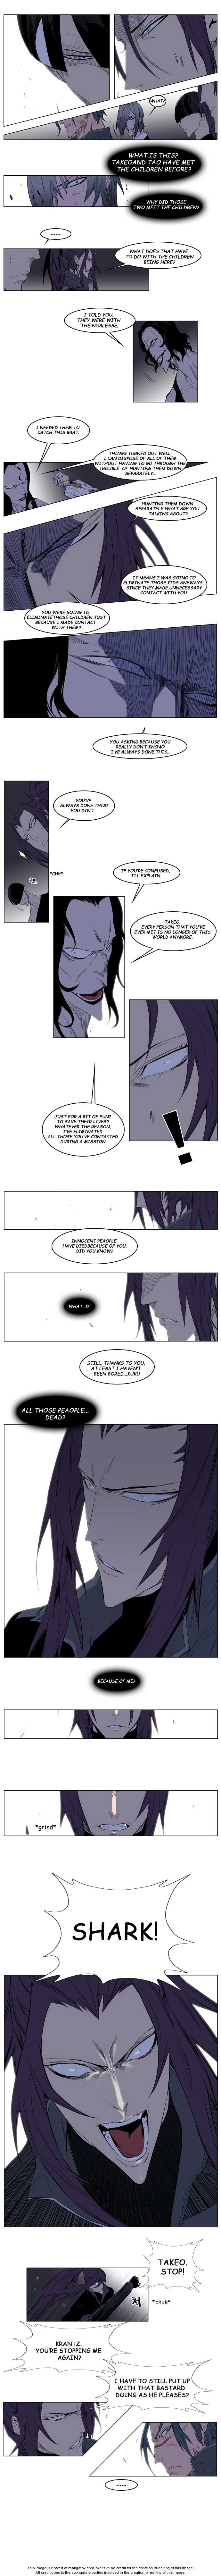 Noblesse 125 Page 2